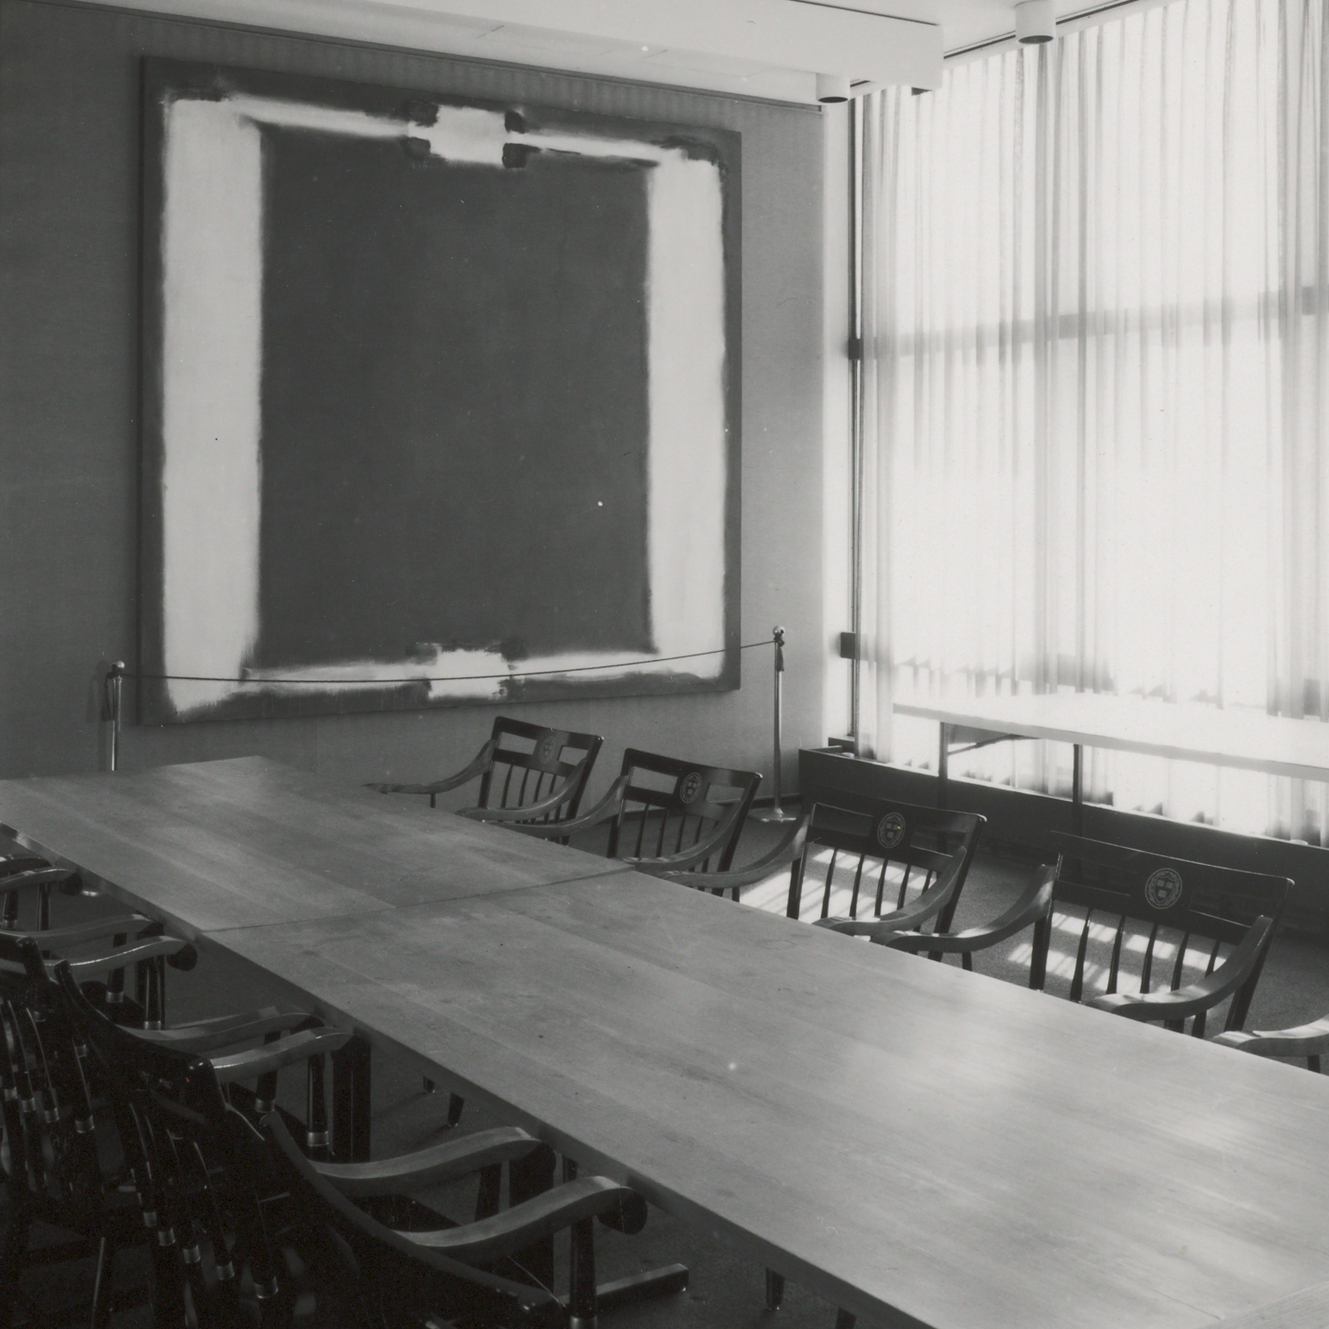 Panel Five of Rothko's Harvard Murals hangs in Holyoke Center in January 1968.